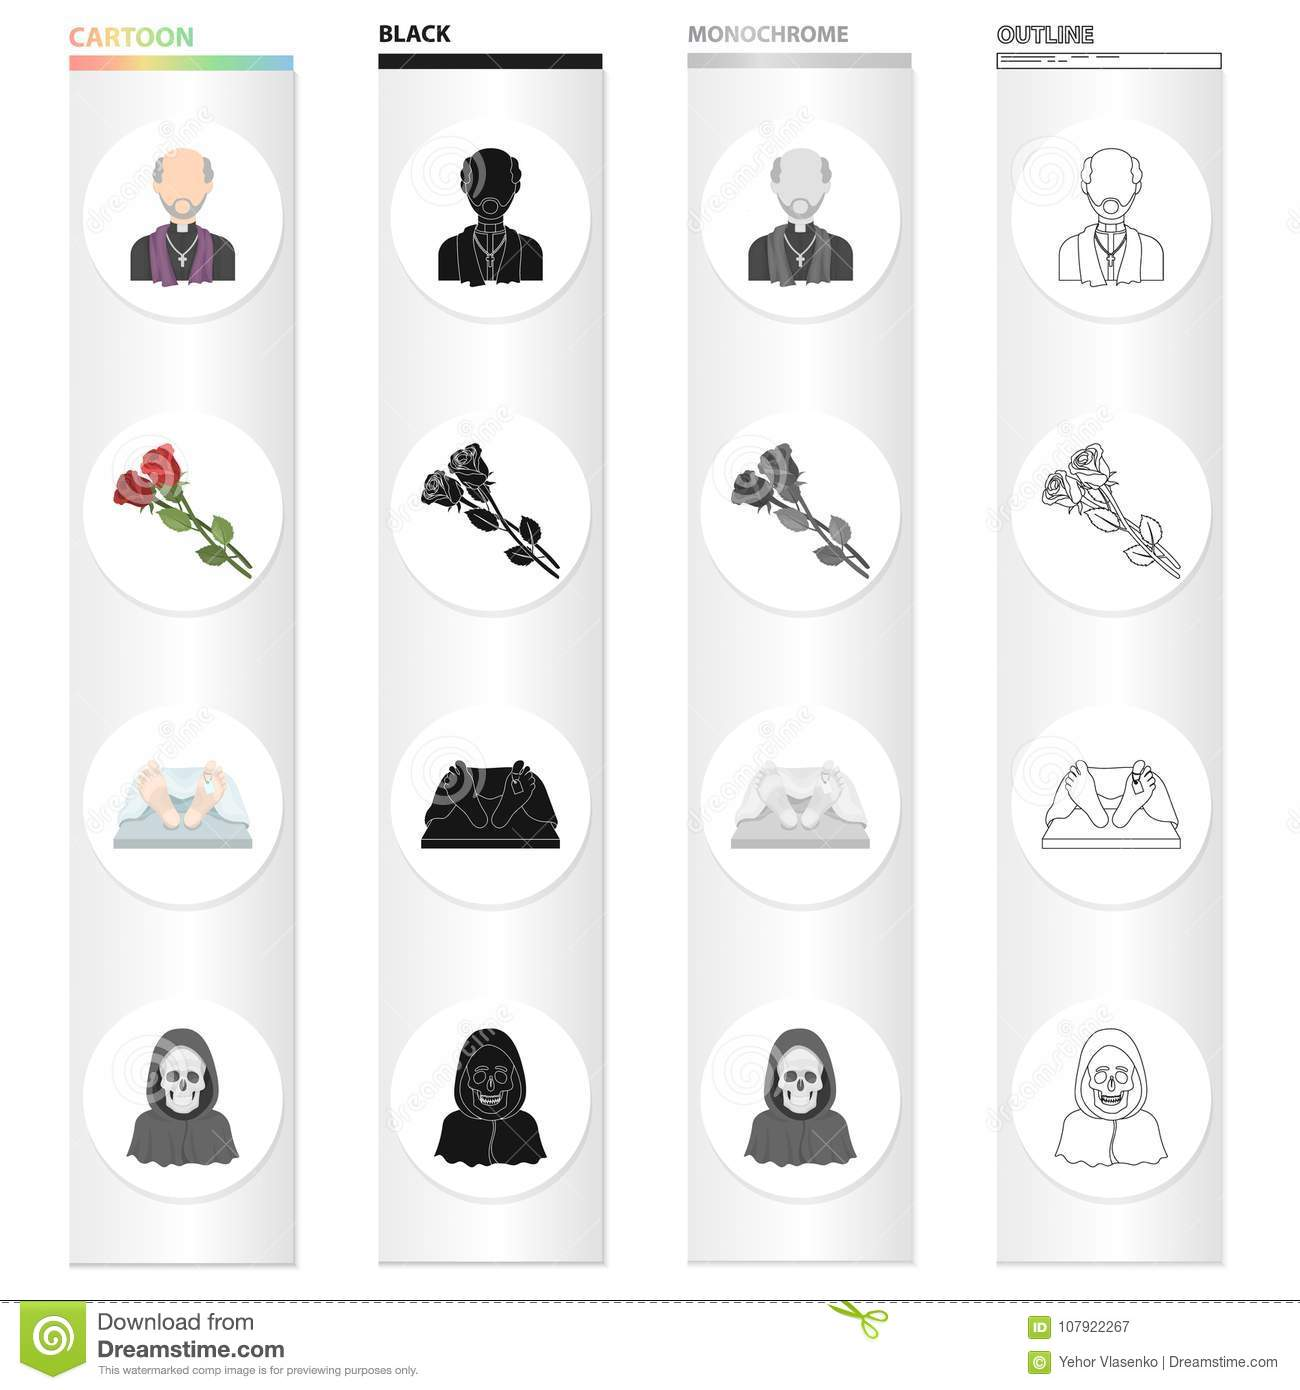 A priest, flowers for a funeral, a deceased person, an image of death. Funeral ceremony set collection icons in cartoon